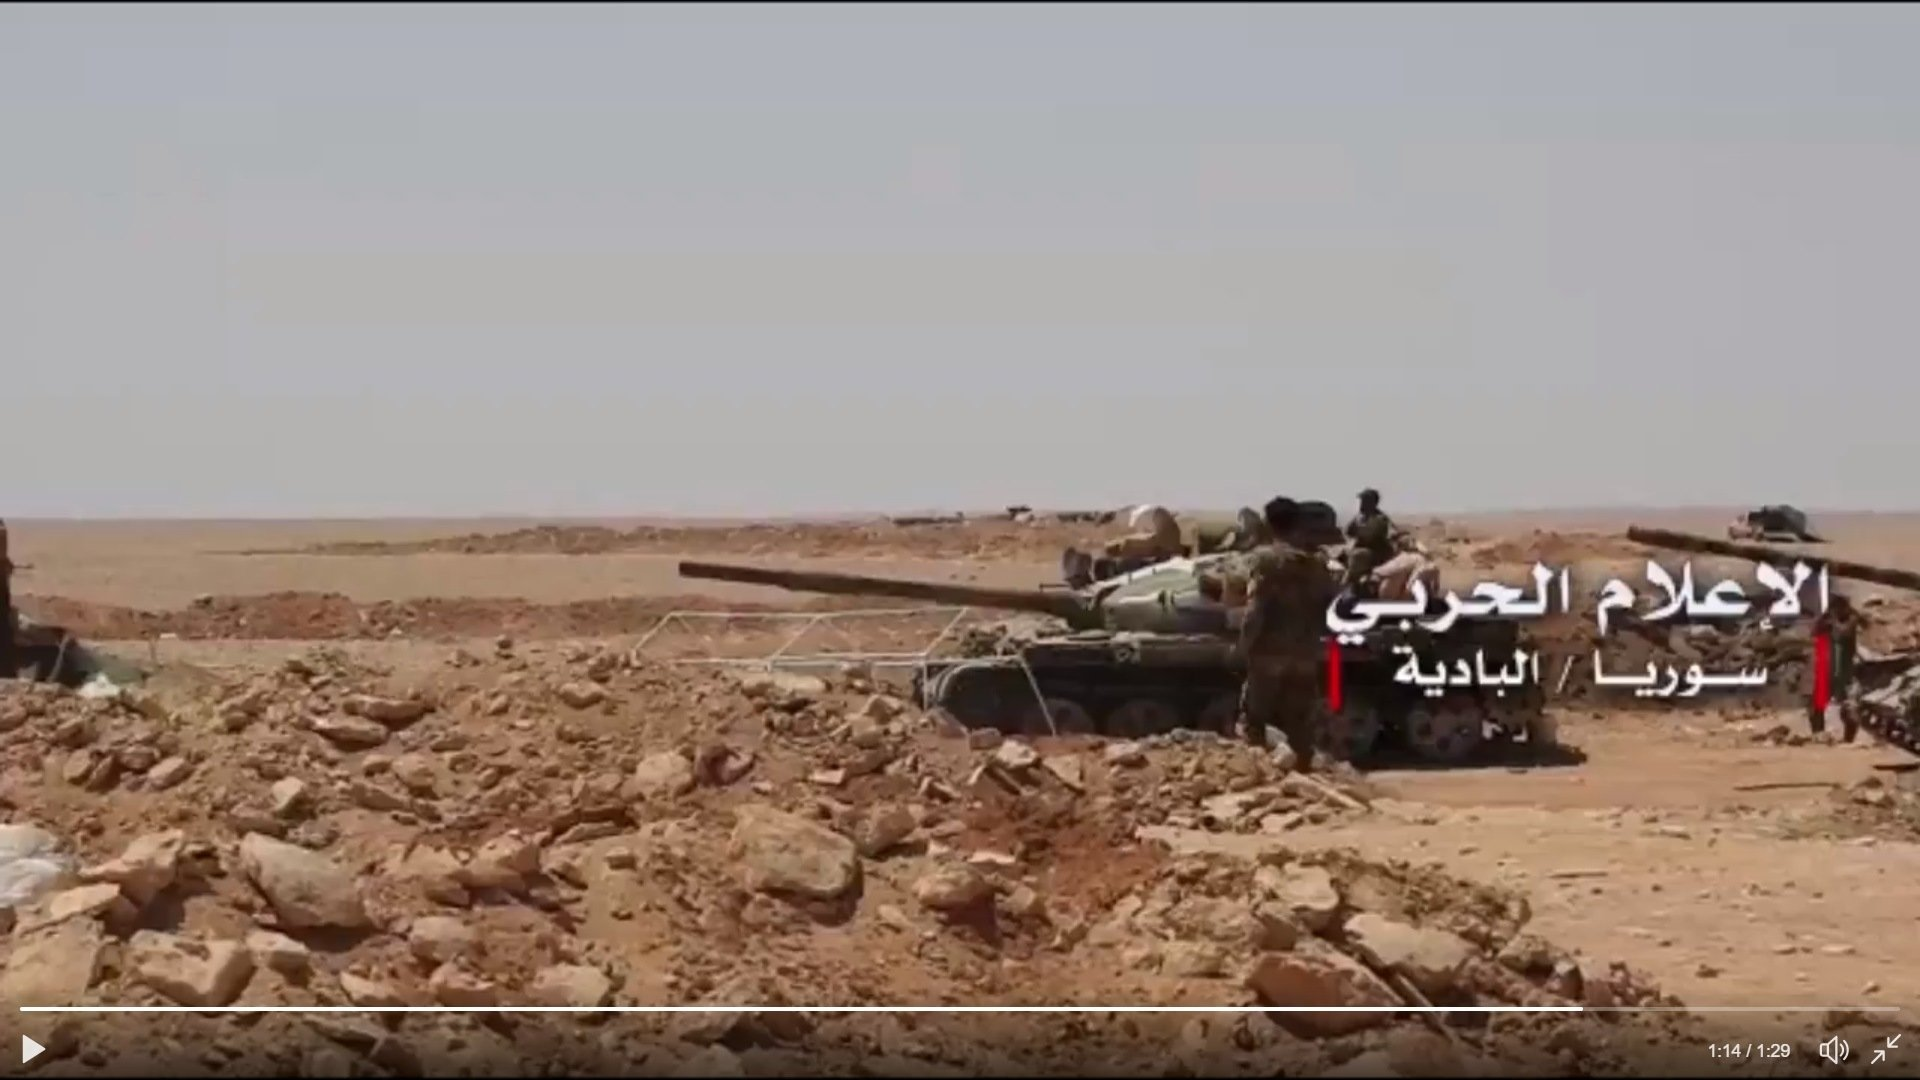 Two tanks targeting incoming ISIS vehicles near Humaymah.